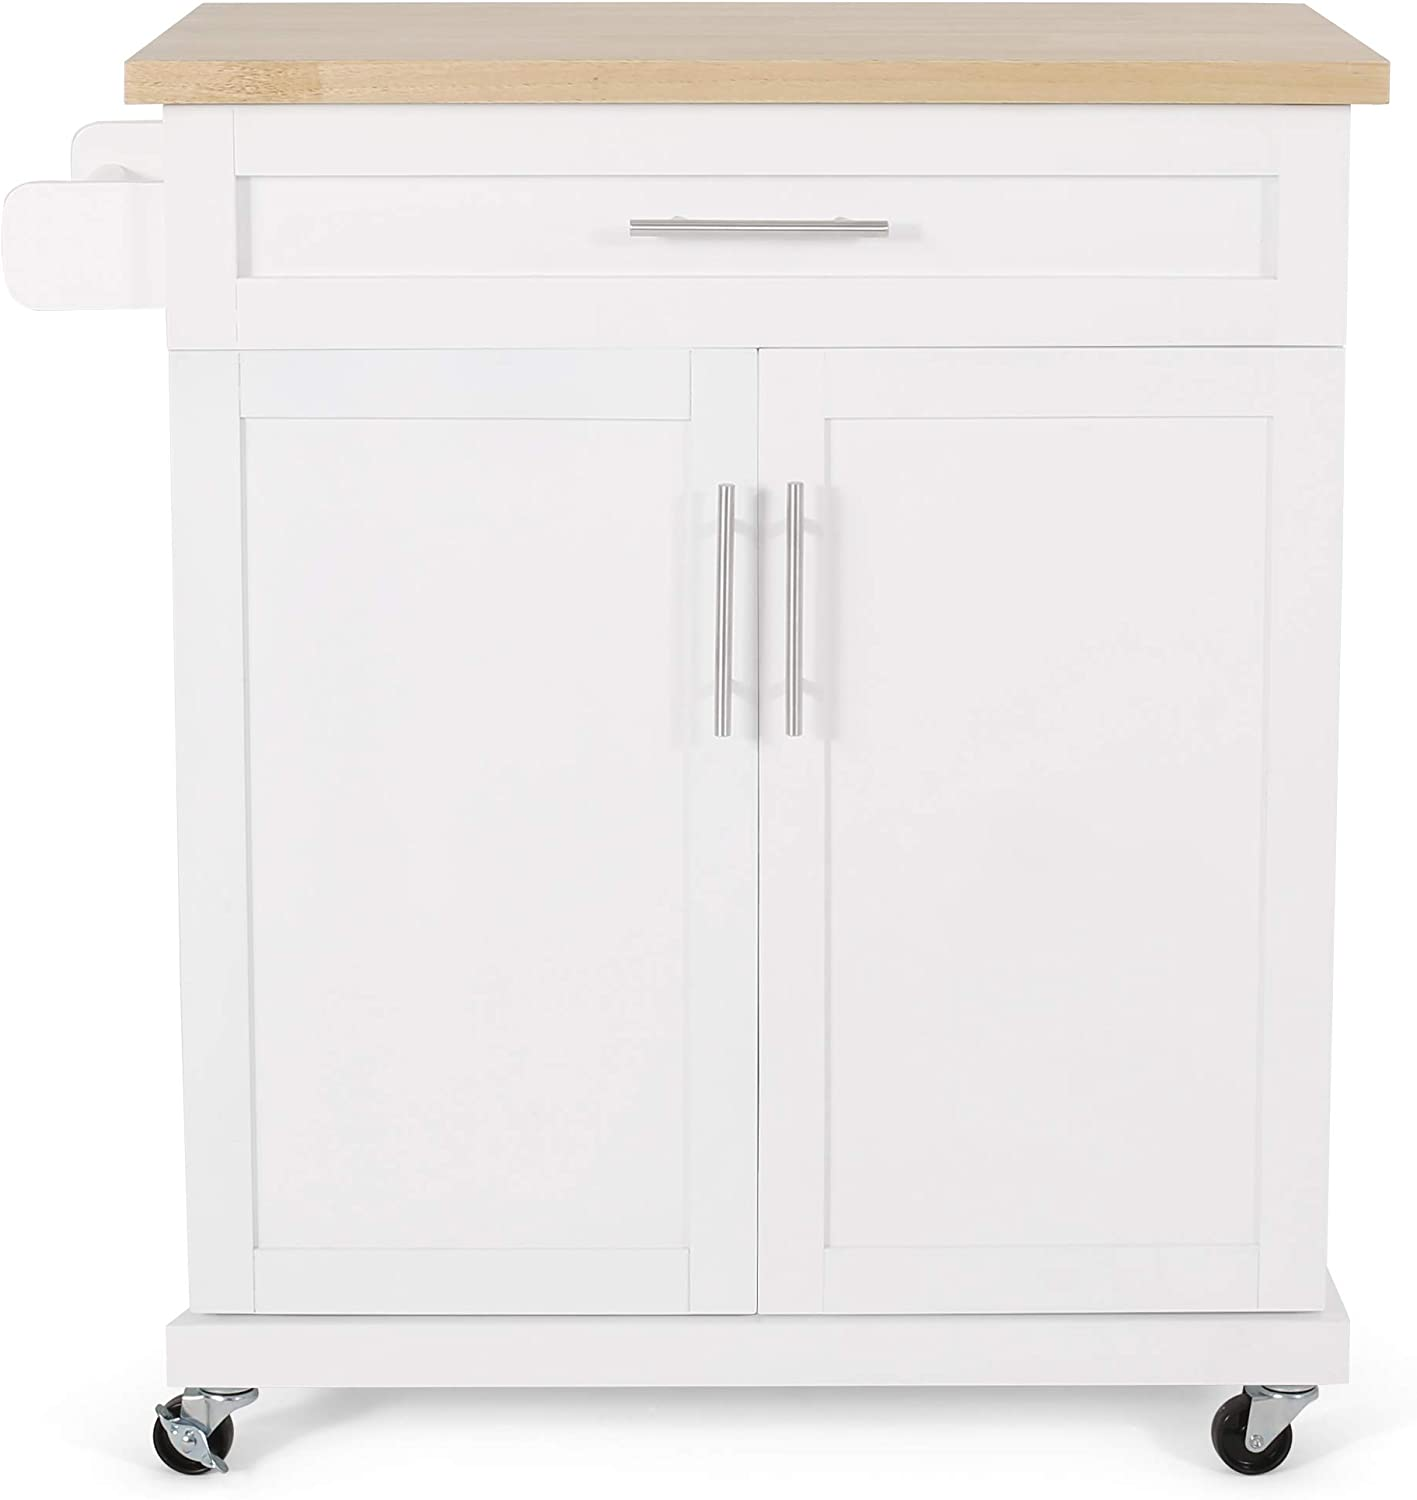 Christopher Knight Home Batavia Brand new Kitchen Natural White Popular products CART +